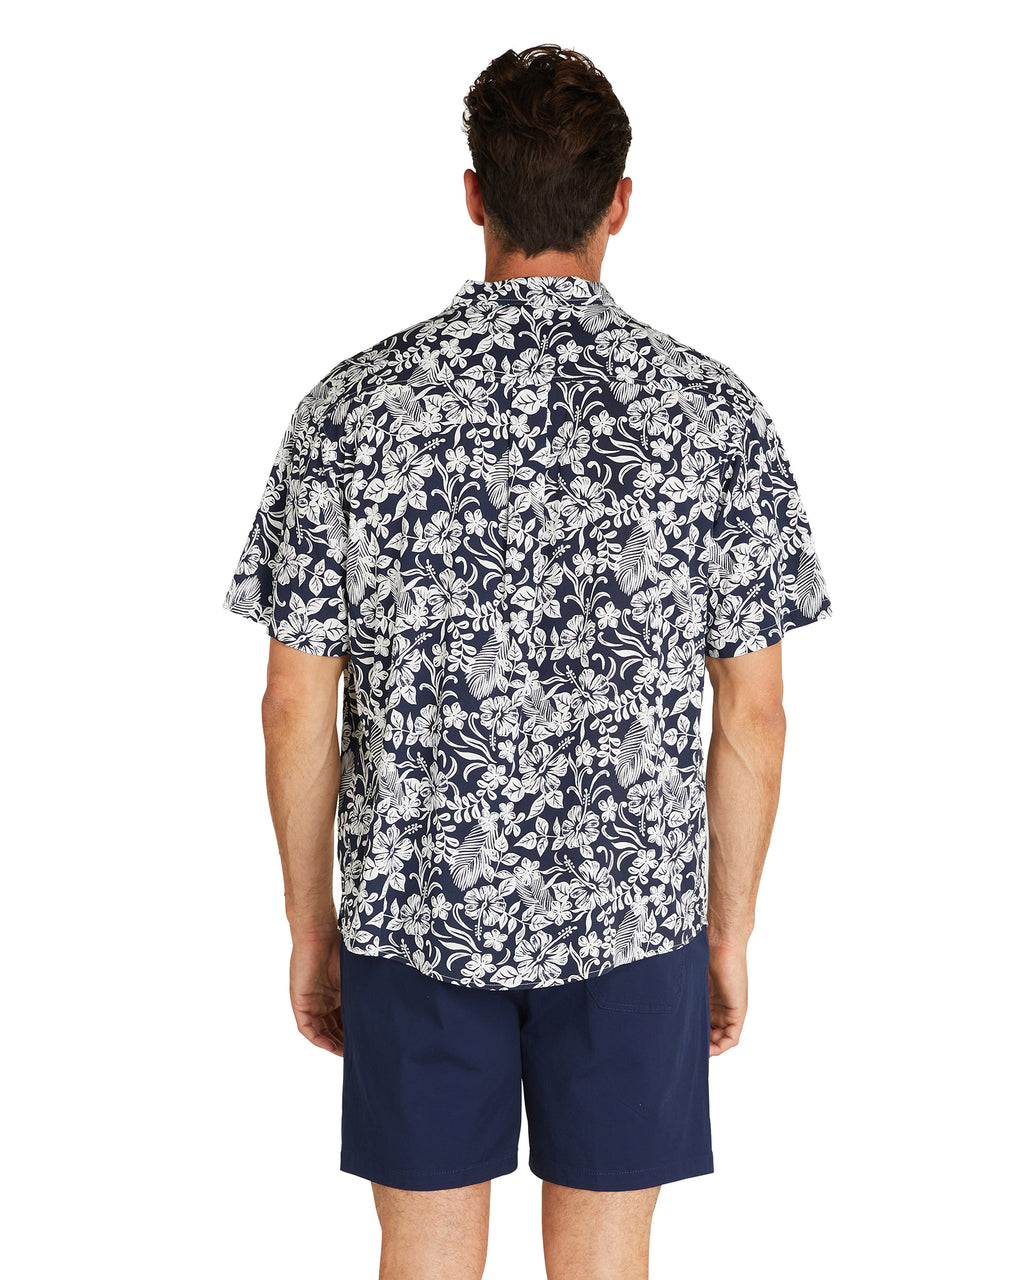 S/S Shirt - Sands - Navy - 100% Rayon